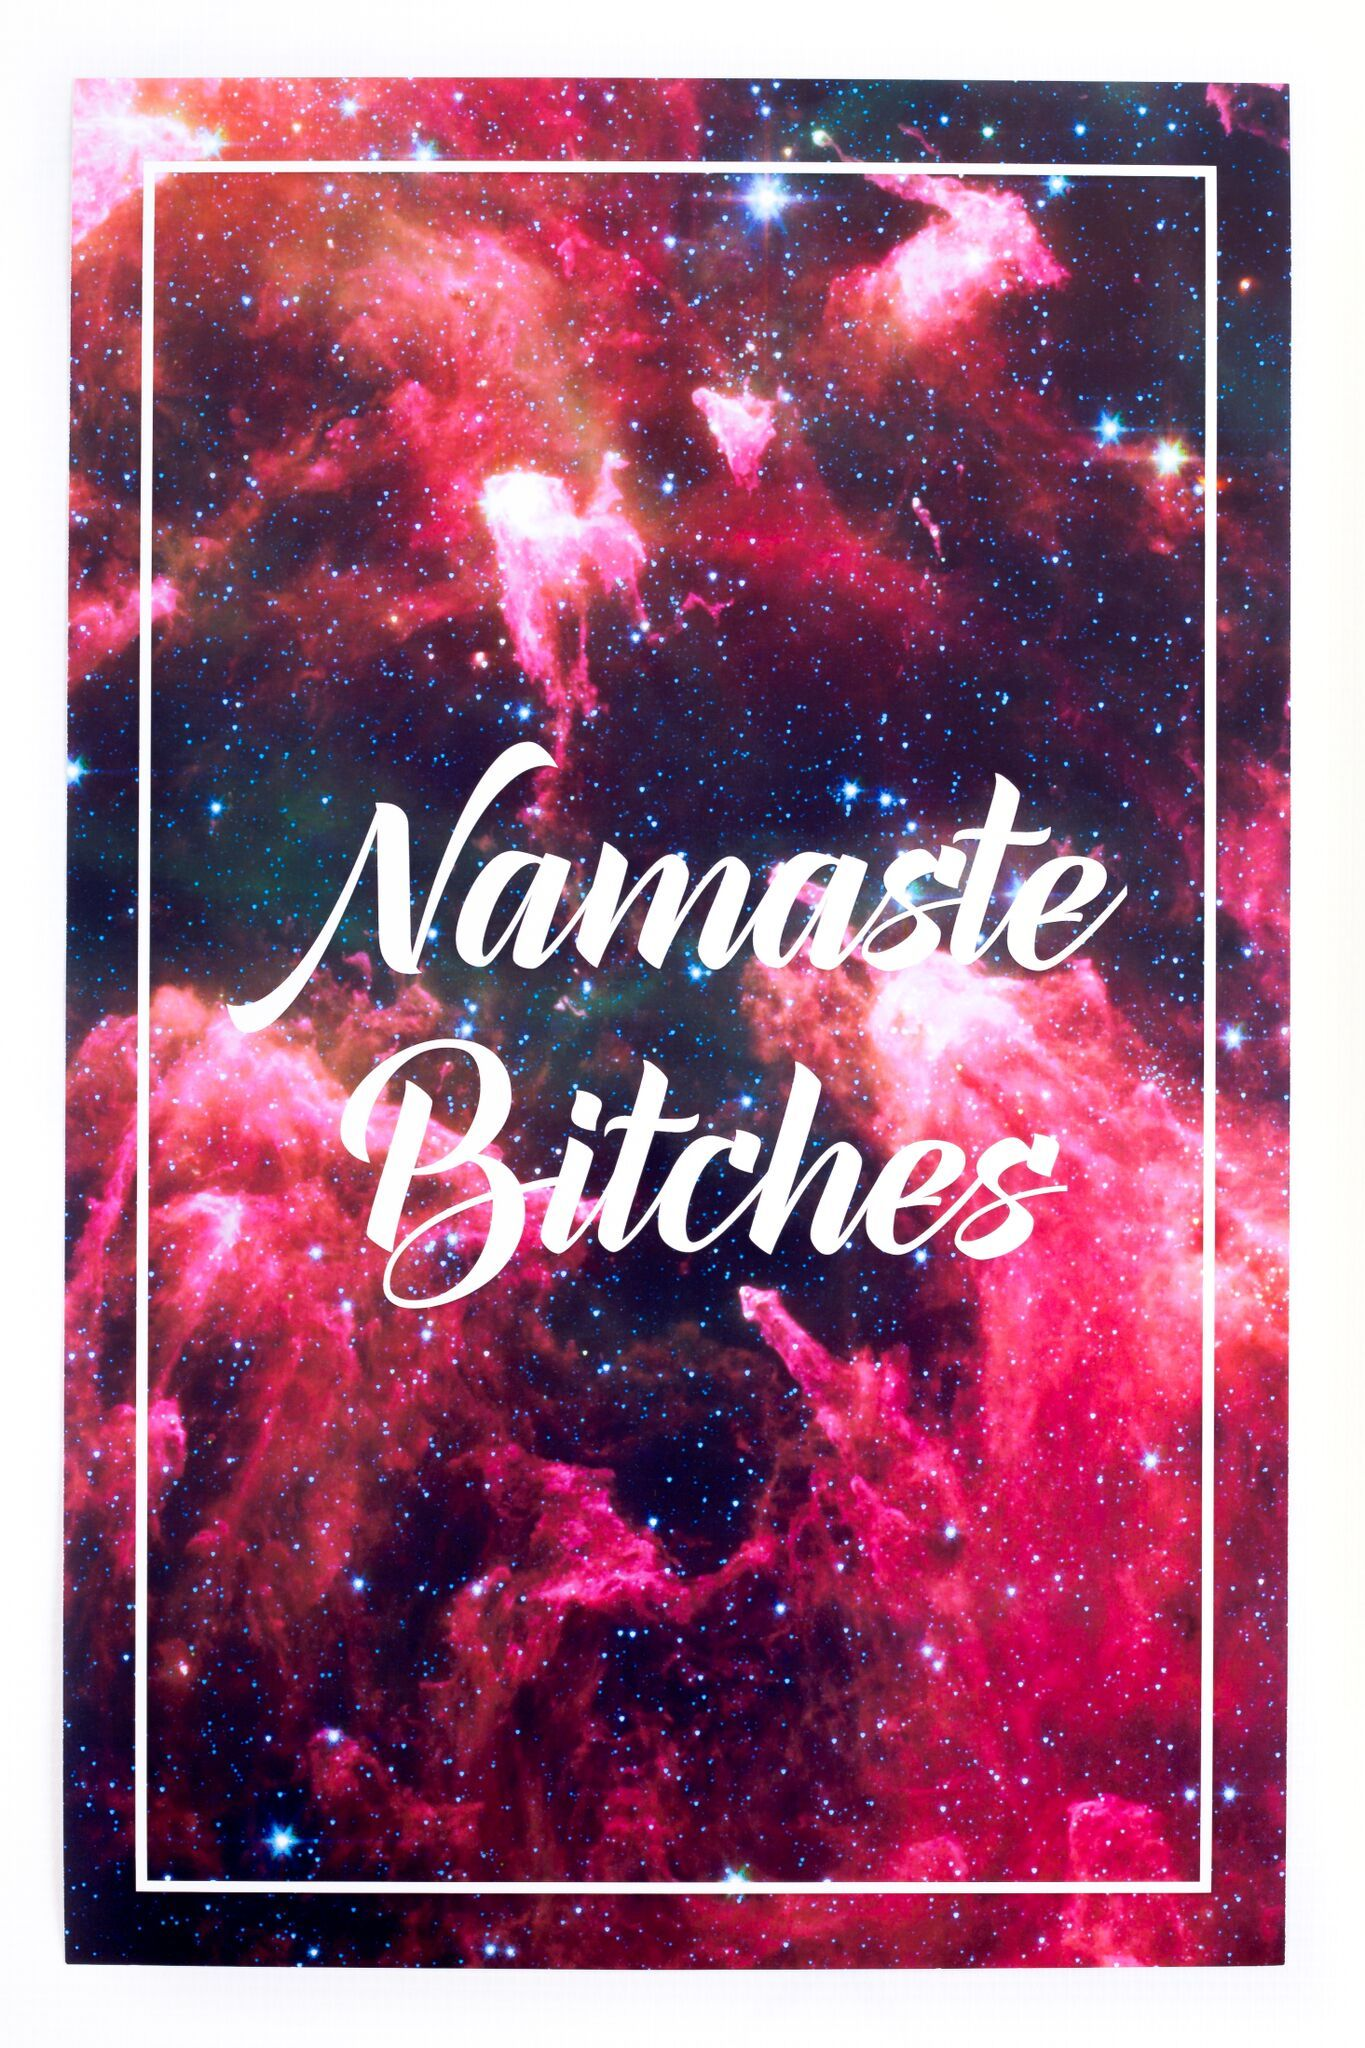 Namaste Bitches Https Thepotentiallist Com Collections